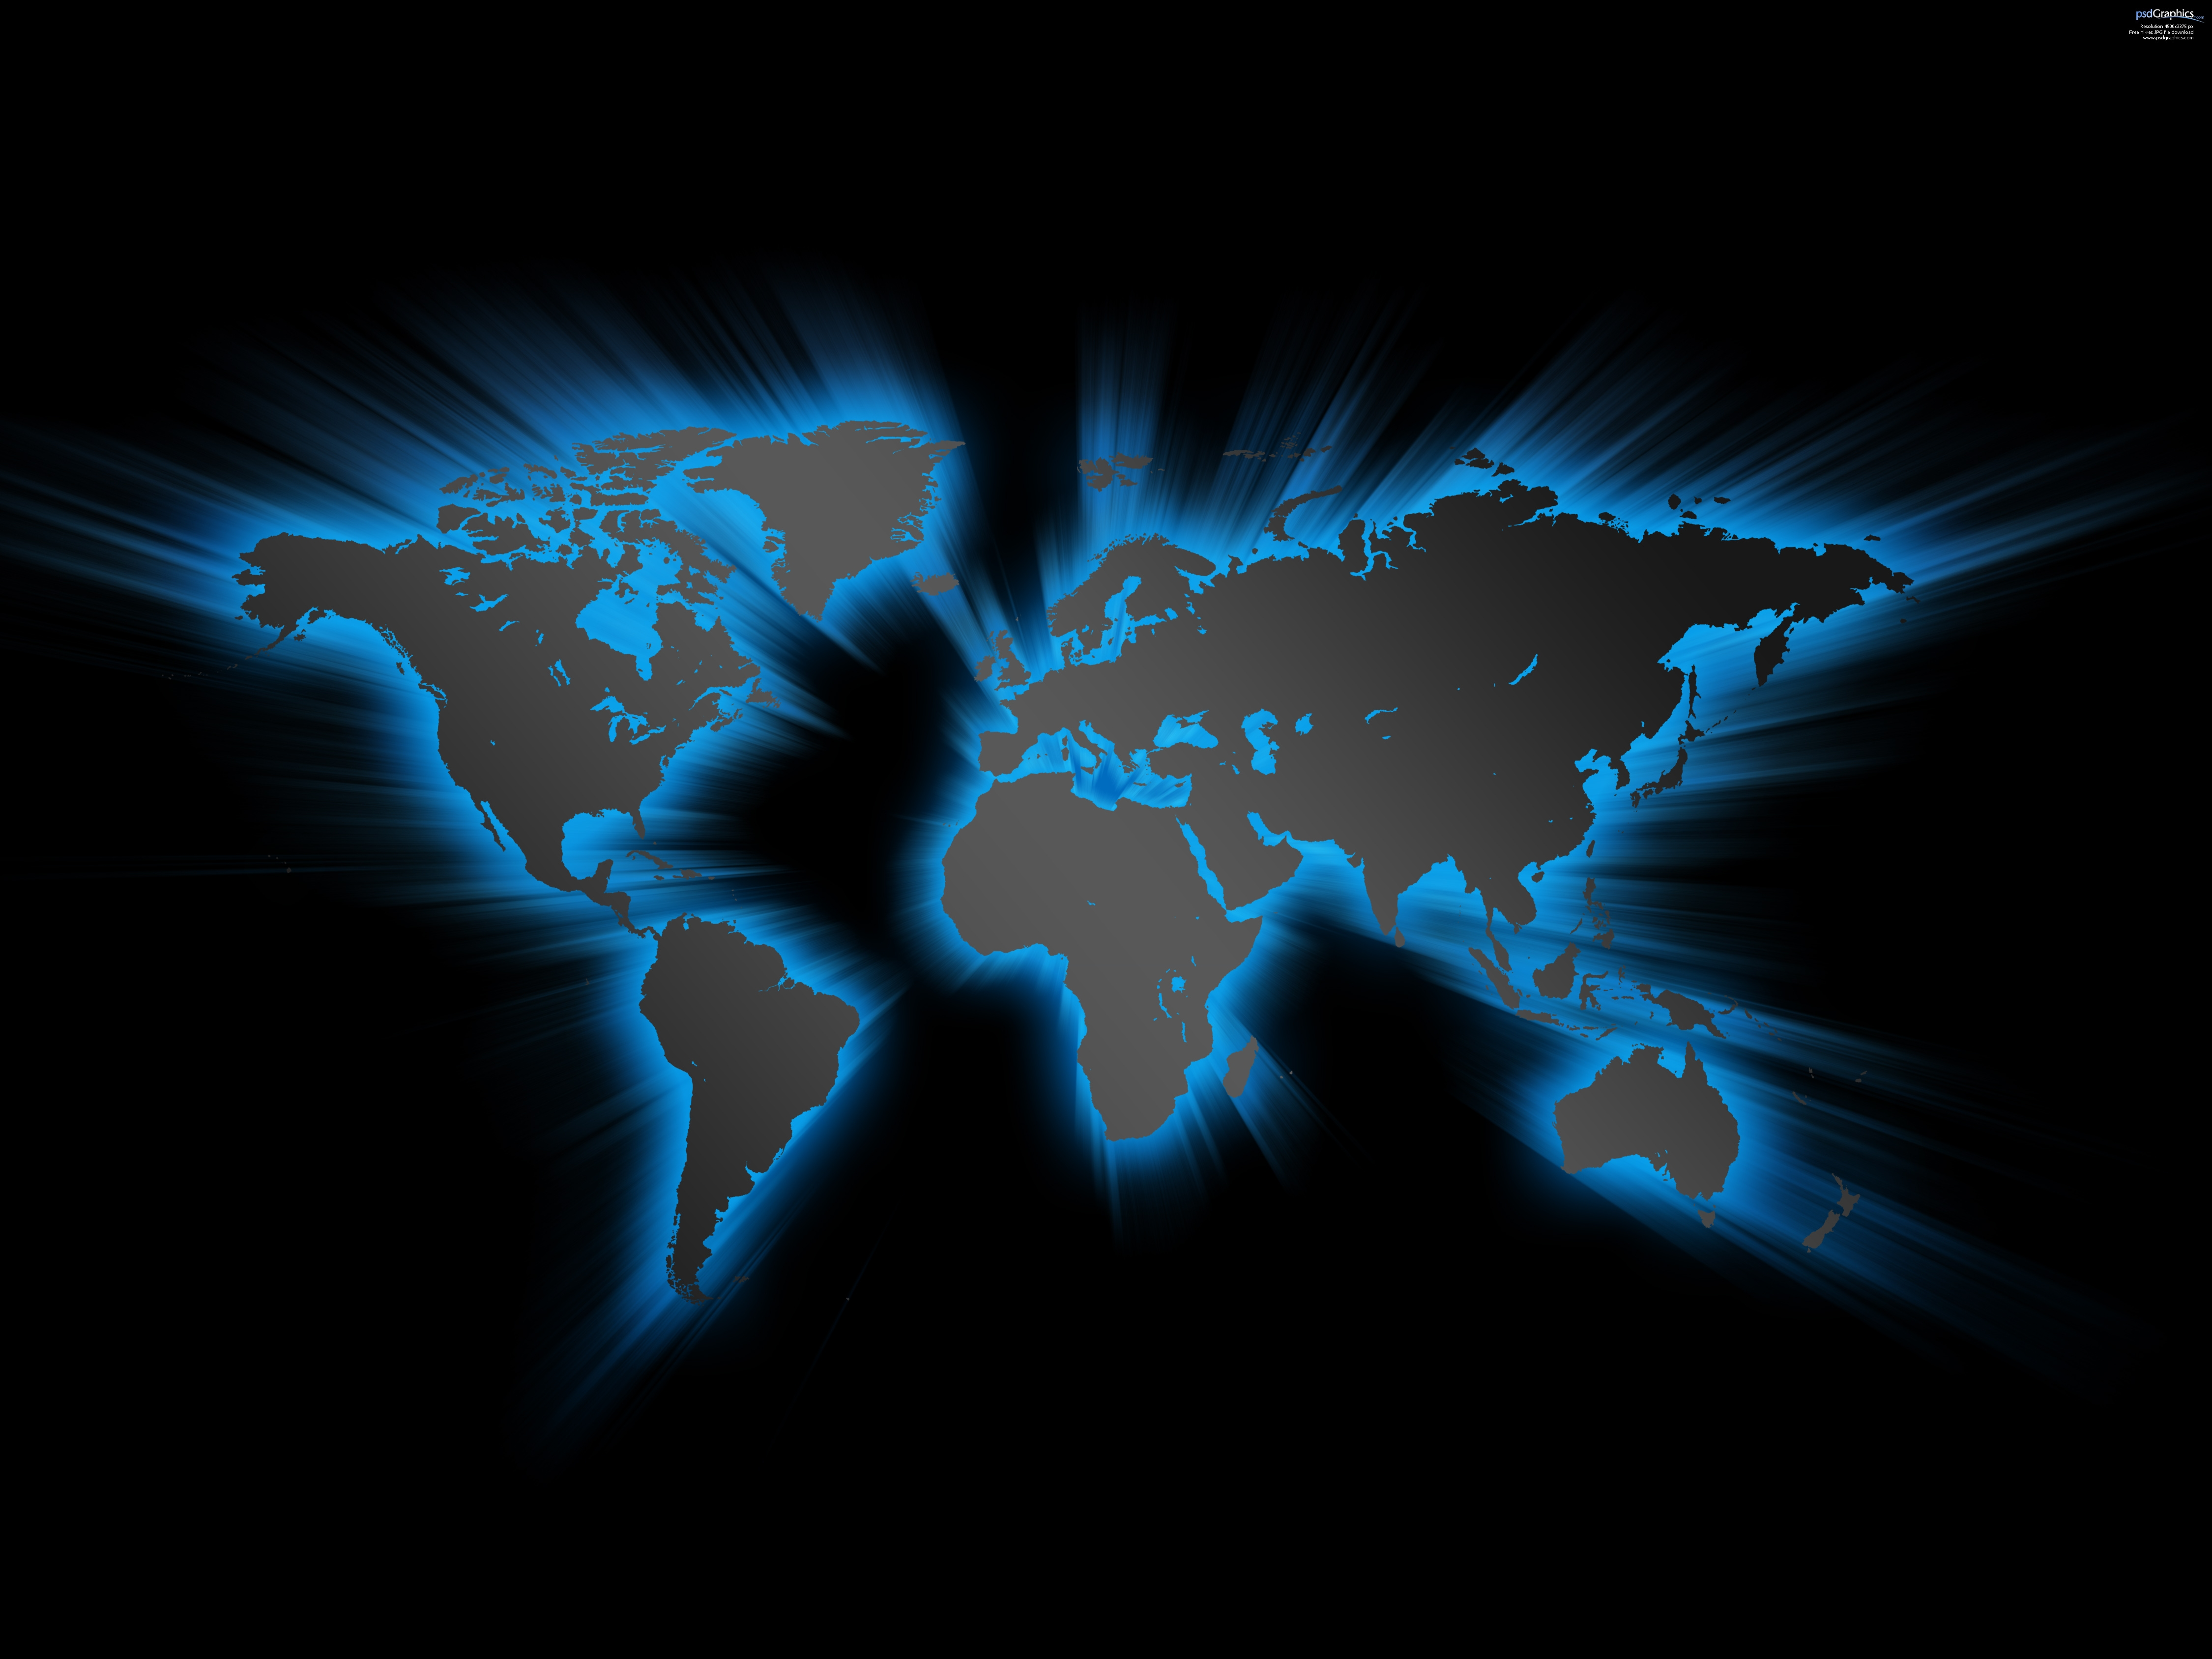 Blue Effect World Map Hd Wallpapers